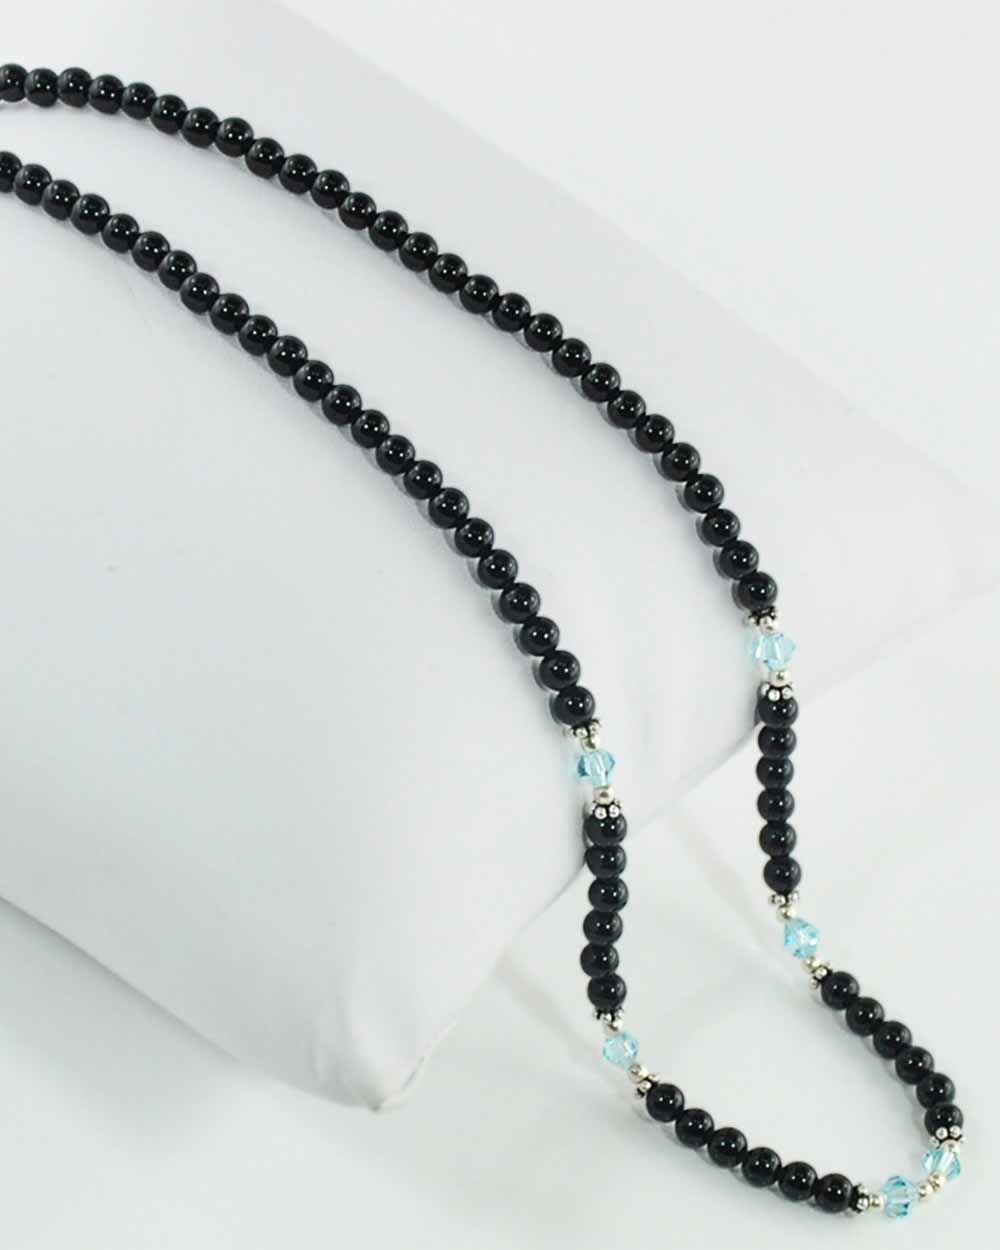 Inspiration Blue Crystals and Black Onyx Necklace